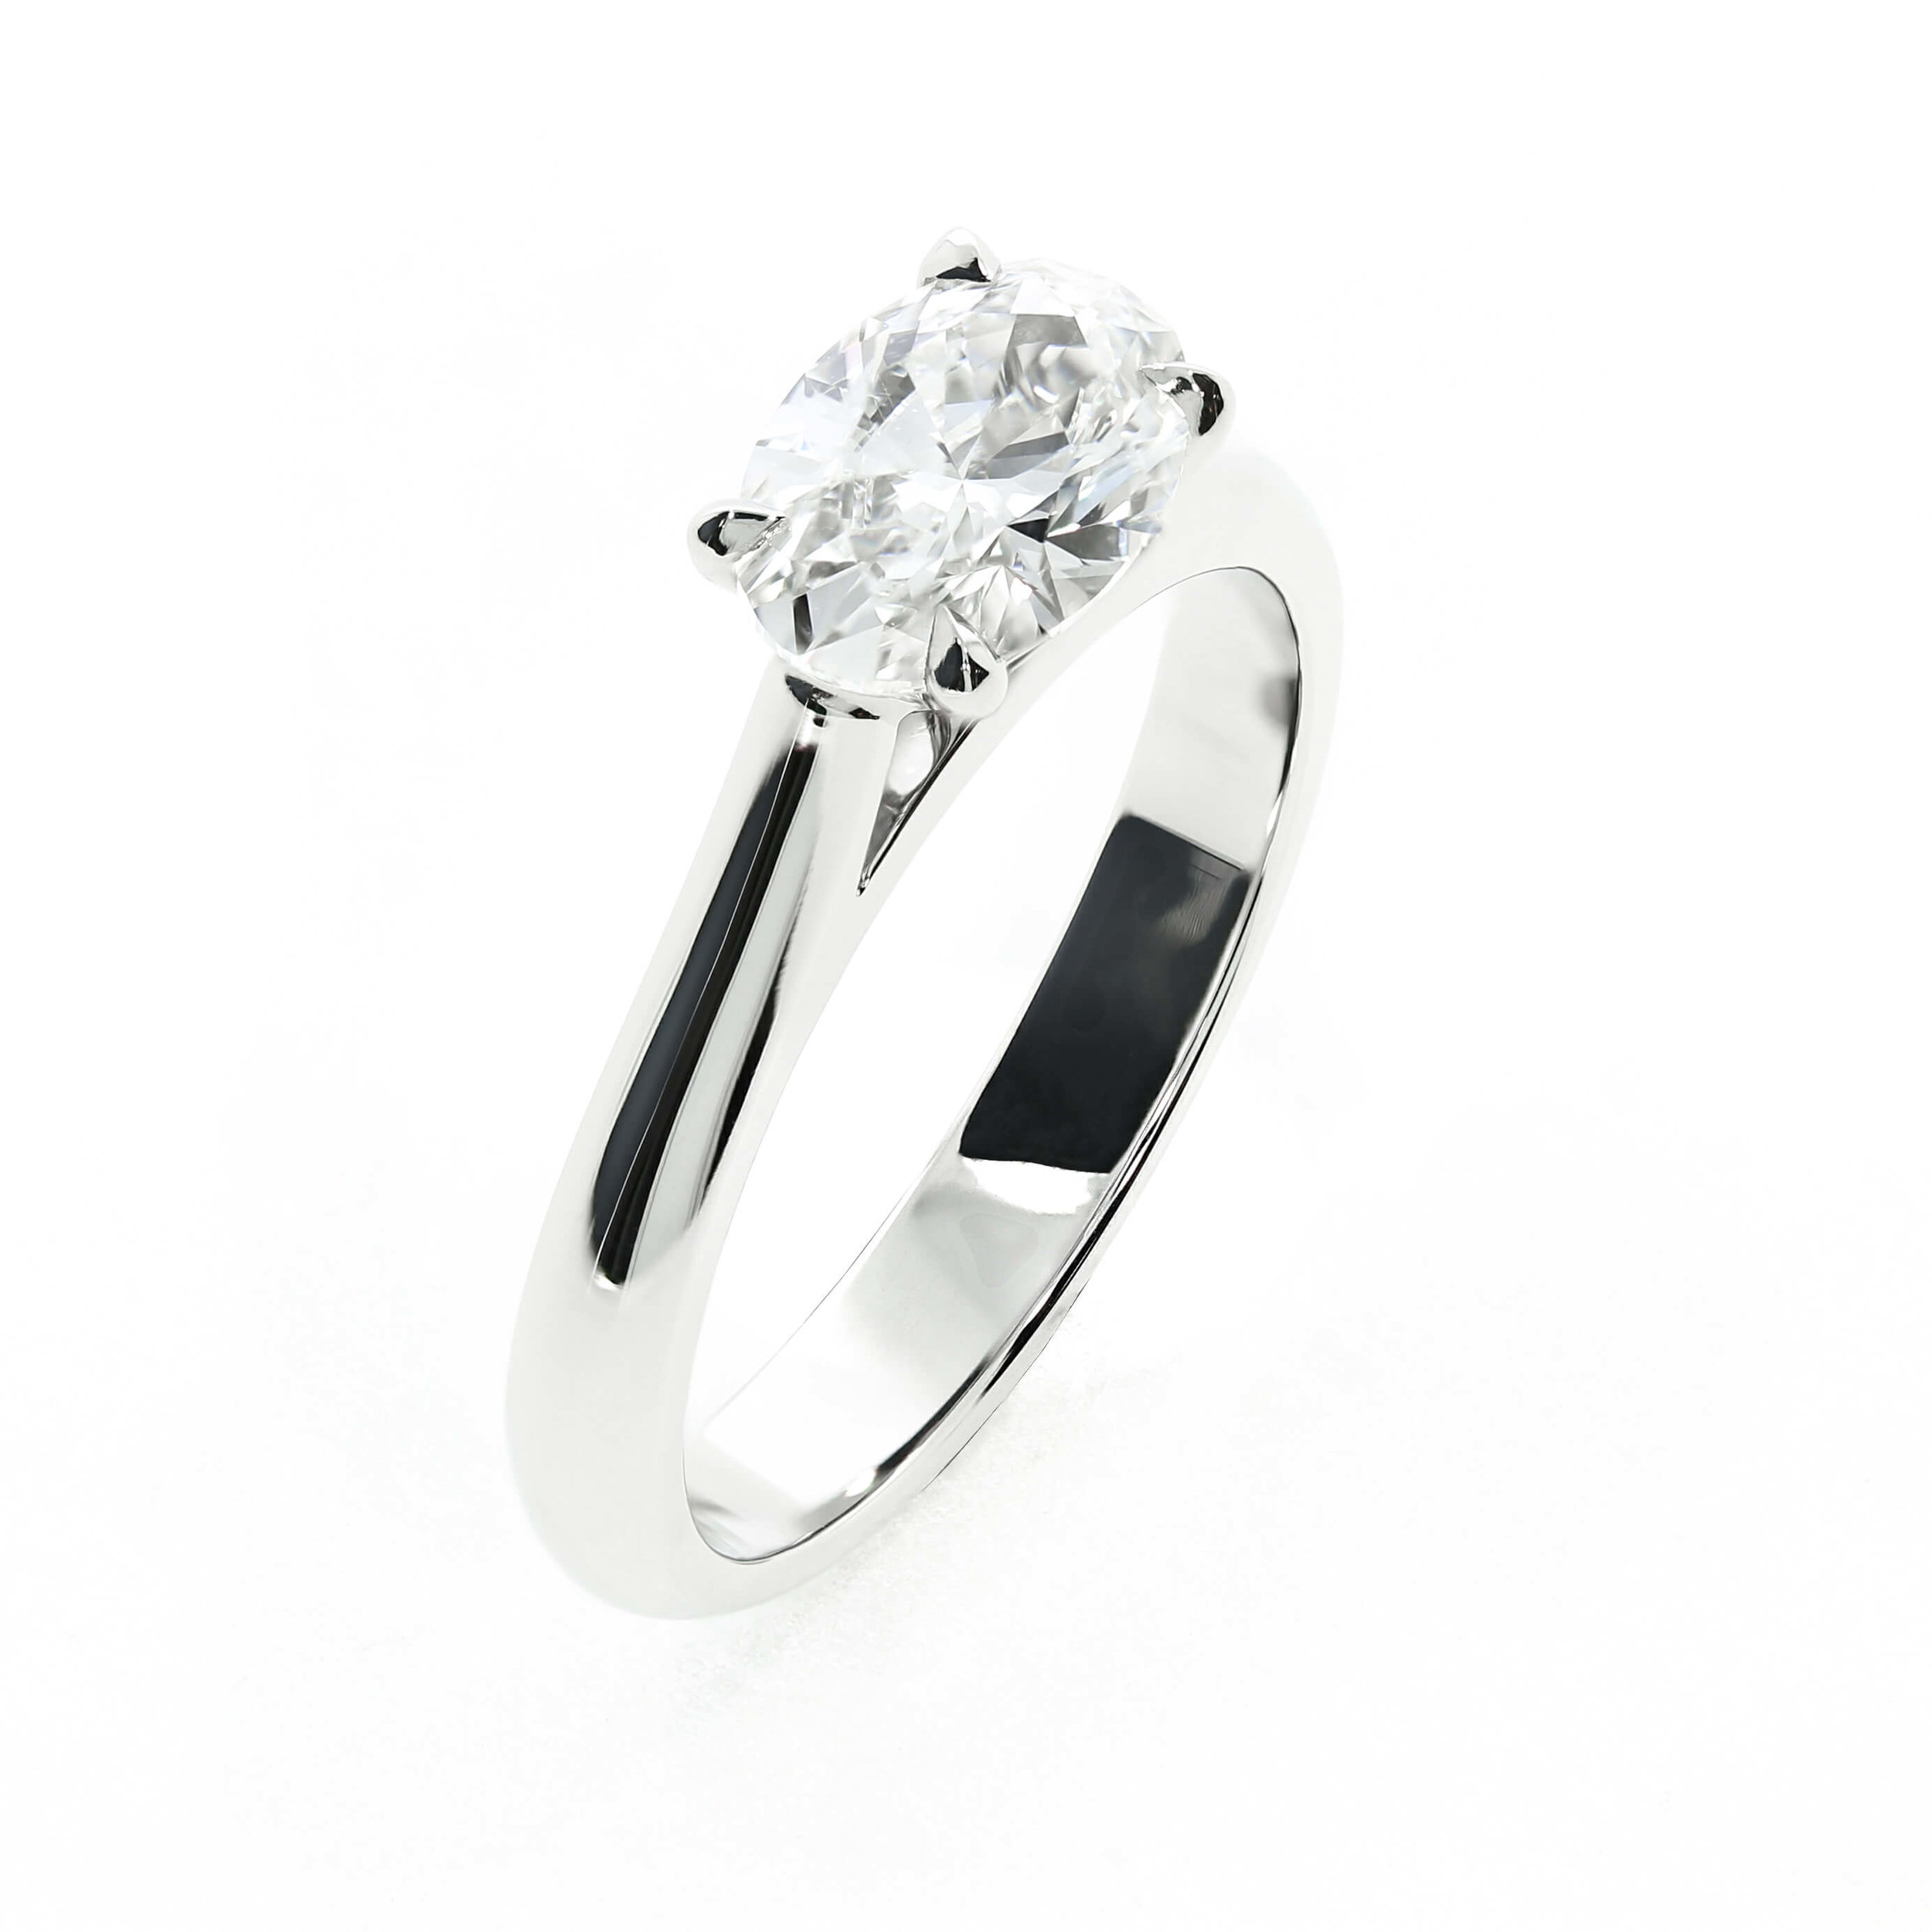 This bespoke engagement ring by Queensmith uses a thick band and horizontally set oval diamond for a neutral look